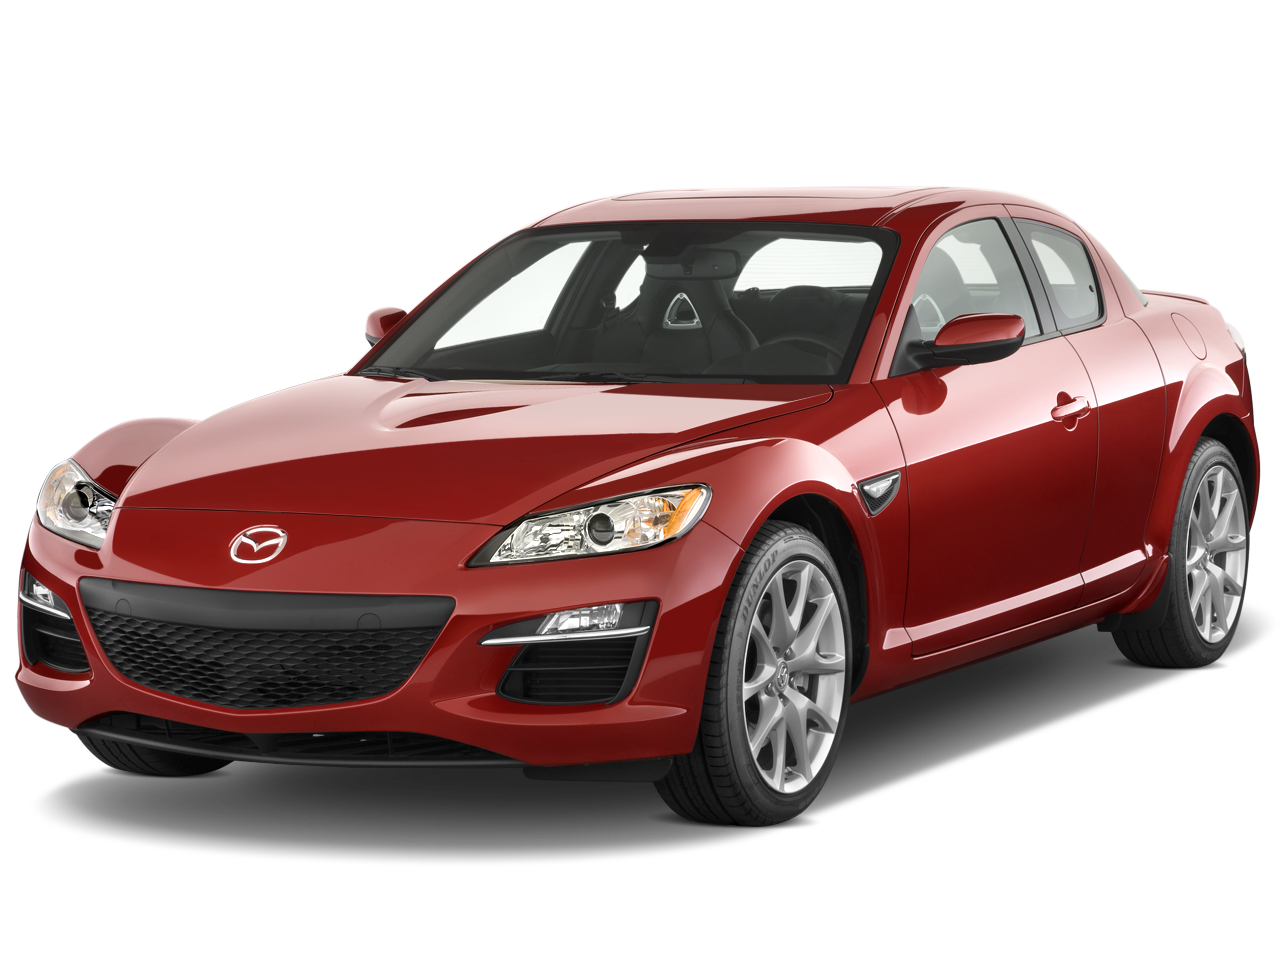 2009 mazda rx 8 r3 mazda sport coupe review automobile. Black Bedroom Furniture Sets. Home Design Ideas